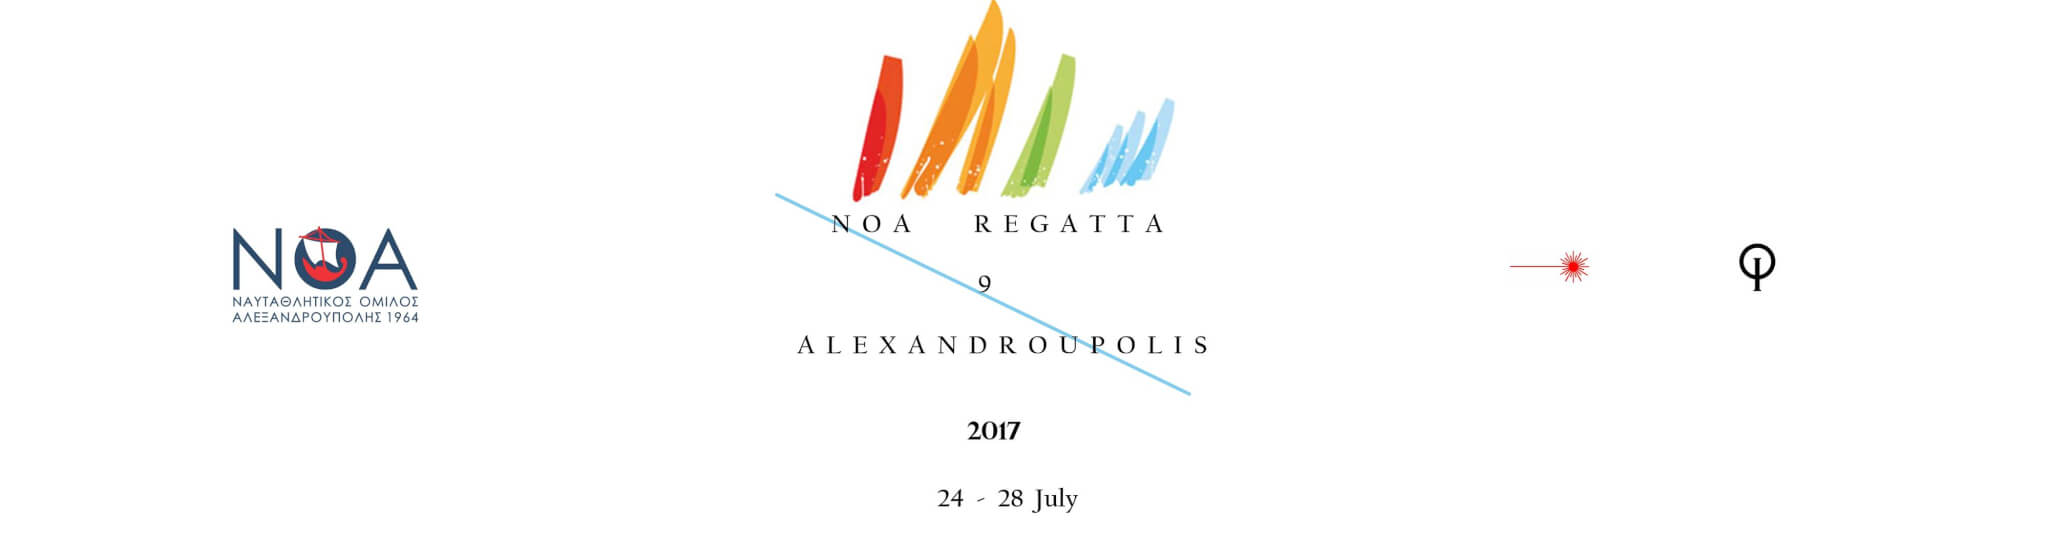 Ν.Ο.Α. International Regatta 2017